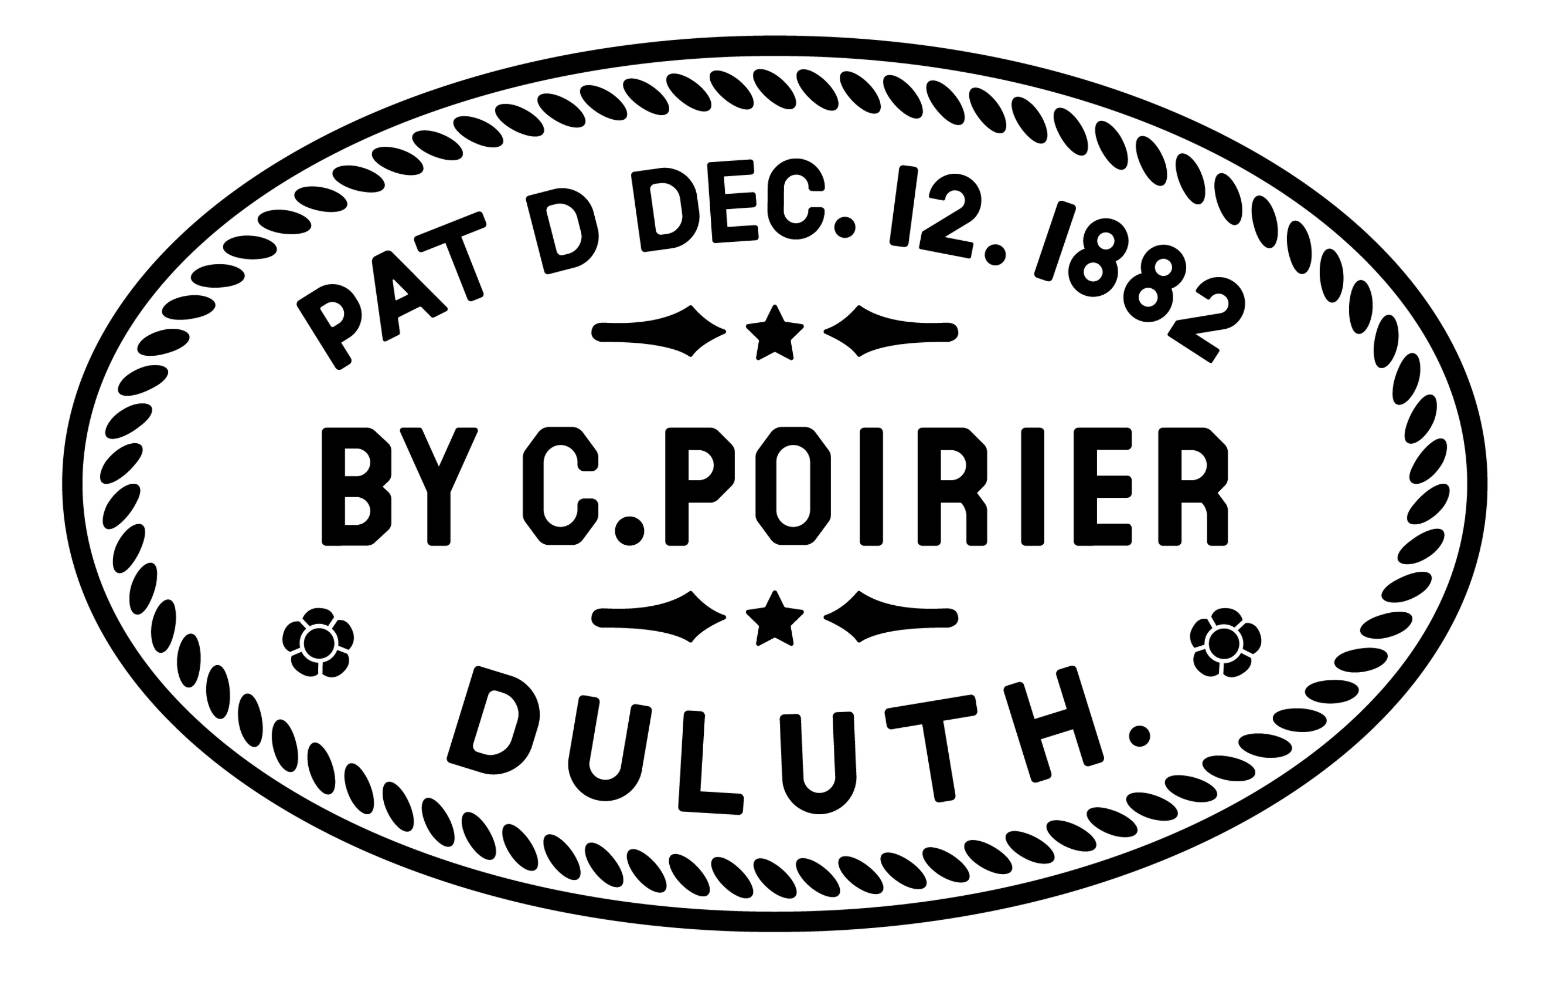 duluth pack patented 1882 by c poirier duluth minnesota